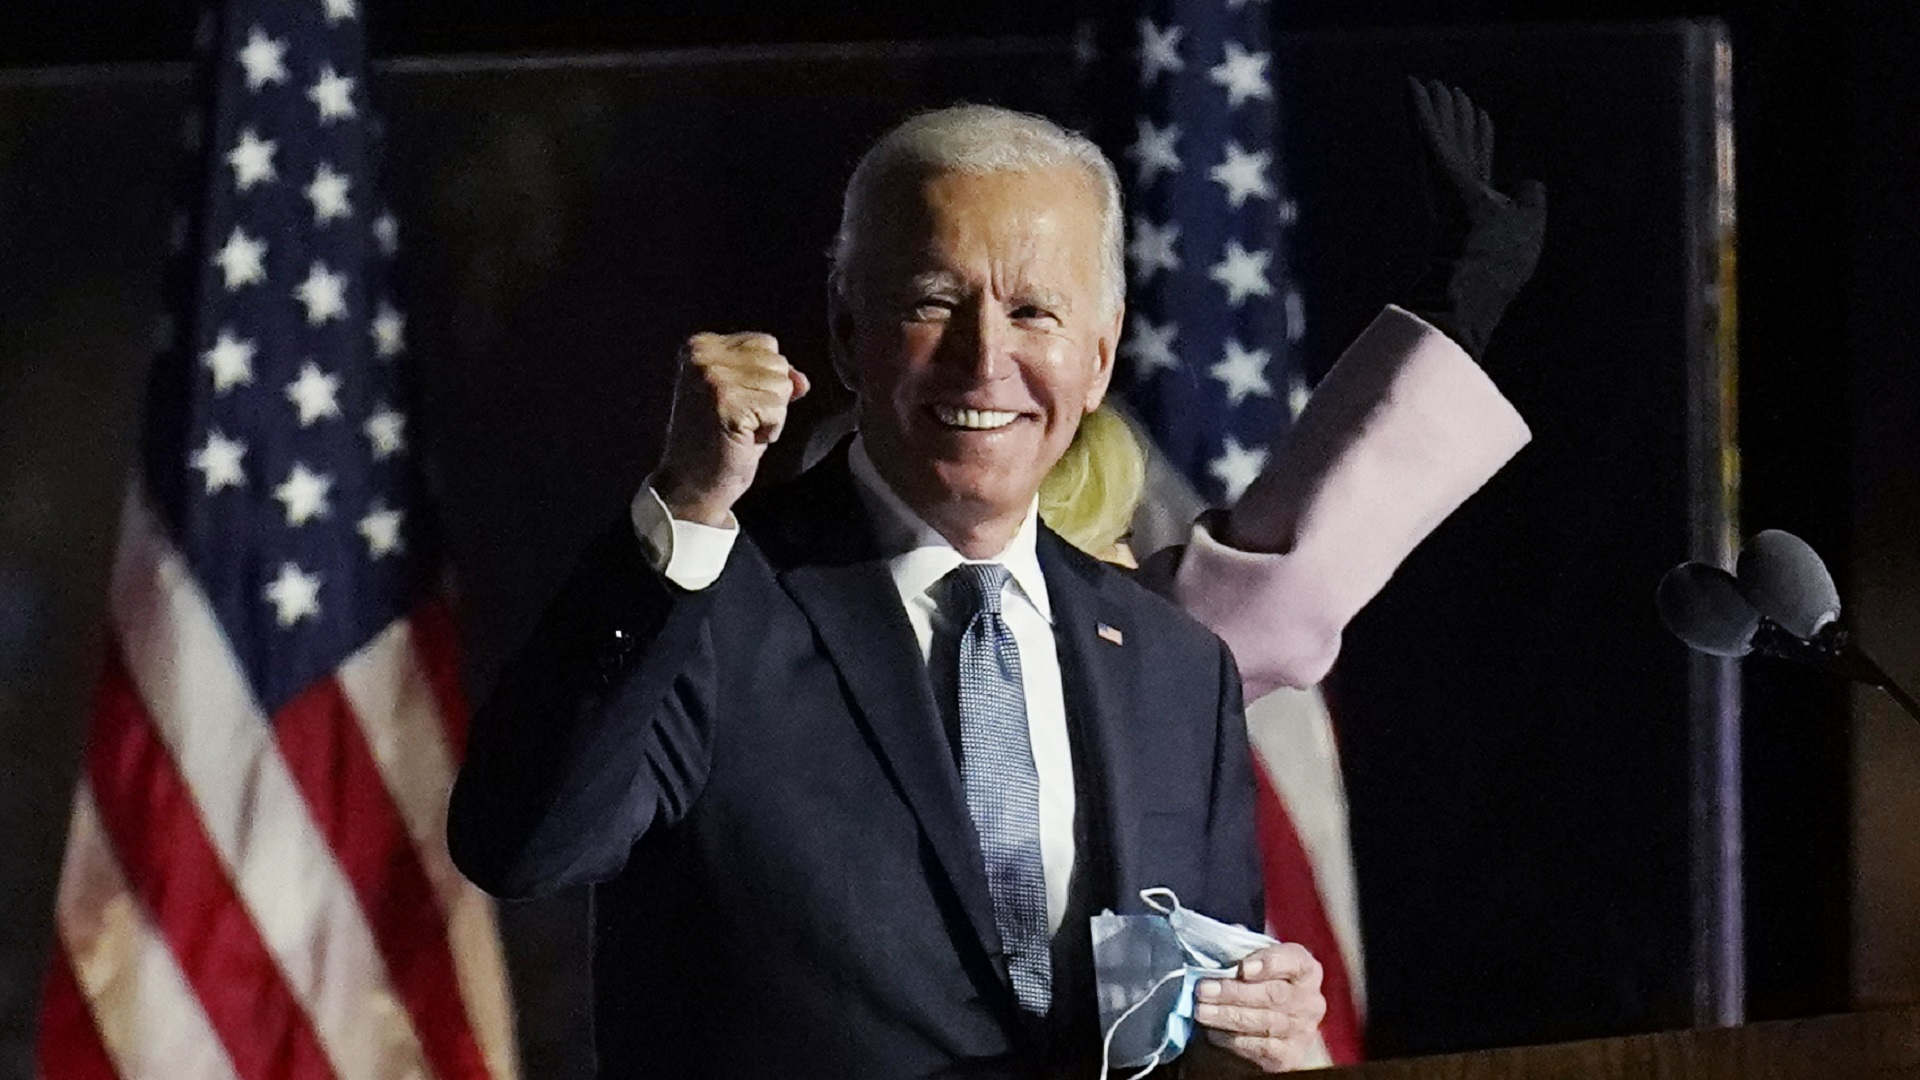 Biden takes the helm as president: 'Democracy has prevailed'